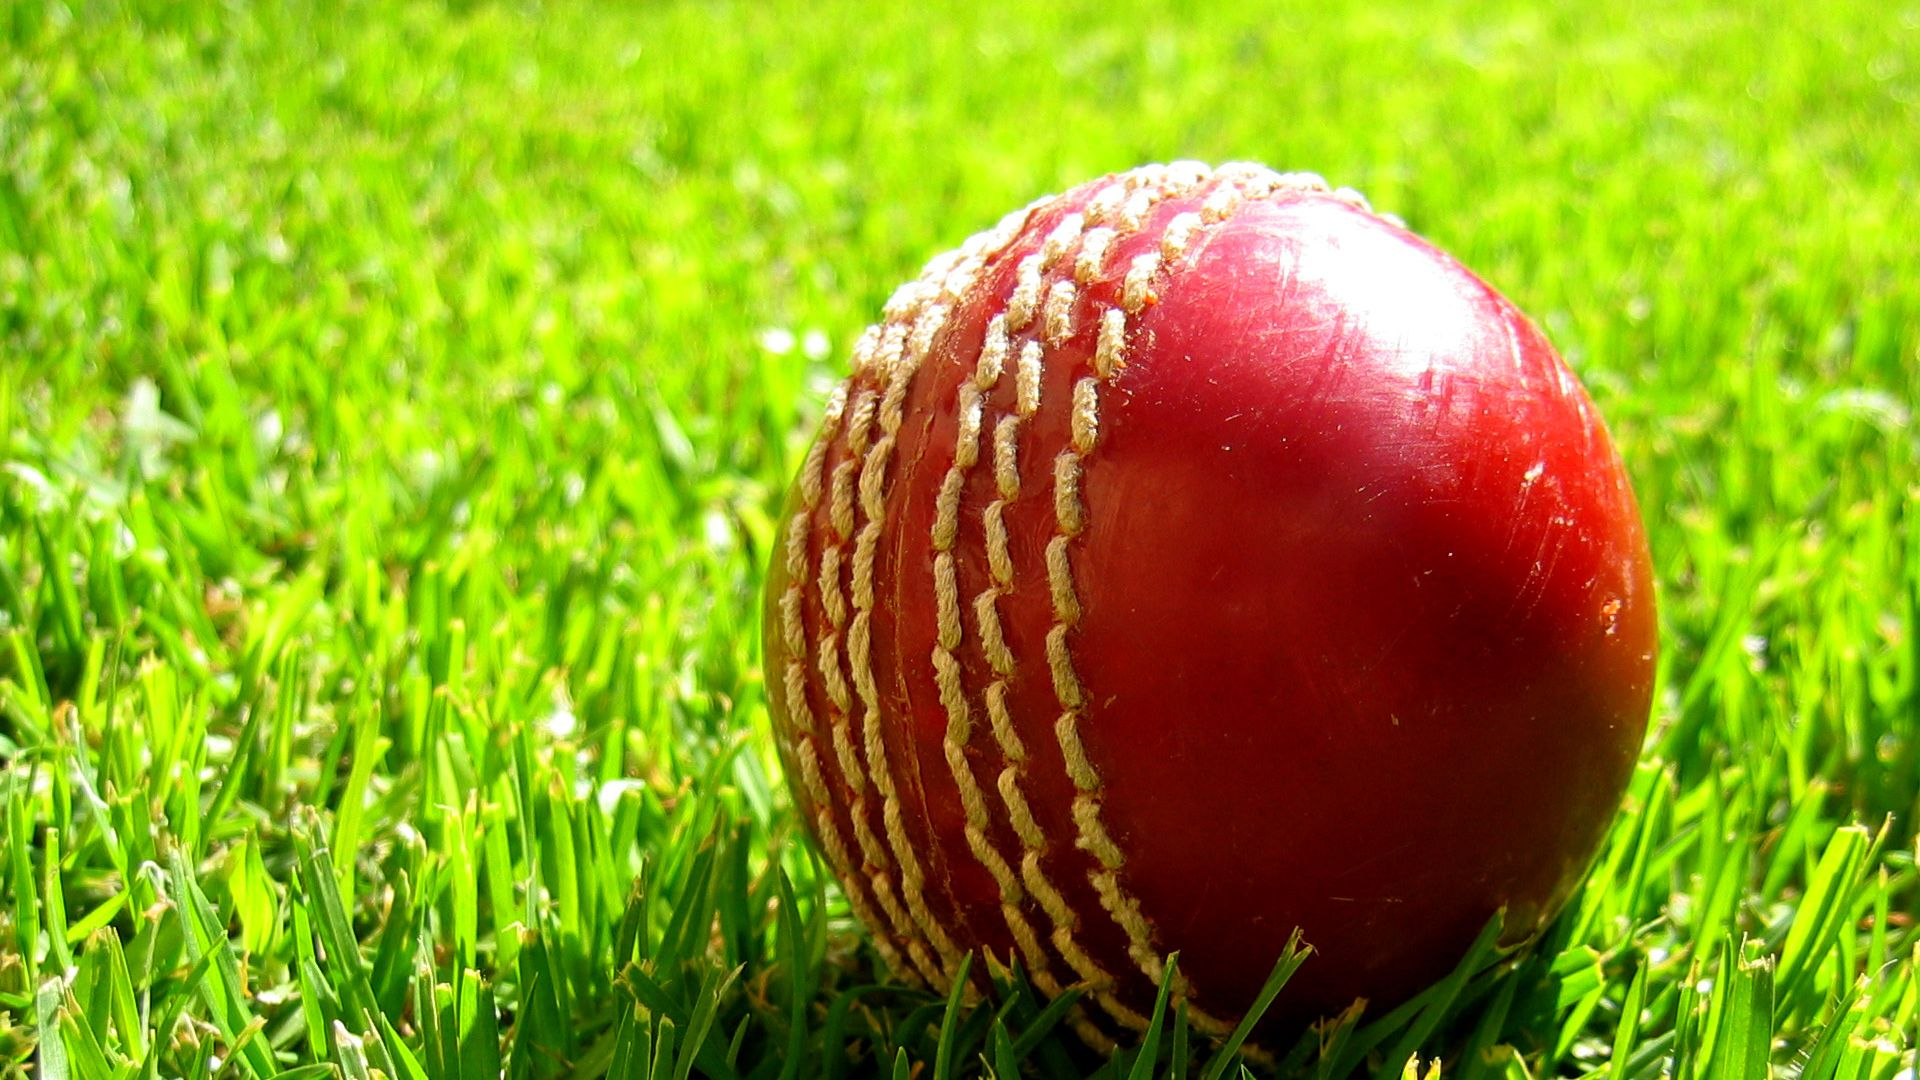 Cricket-1080p-http-and-backgrounds-net-cricket-1080p-wallpaper-wp3604412